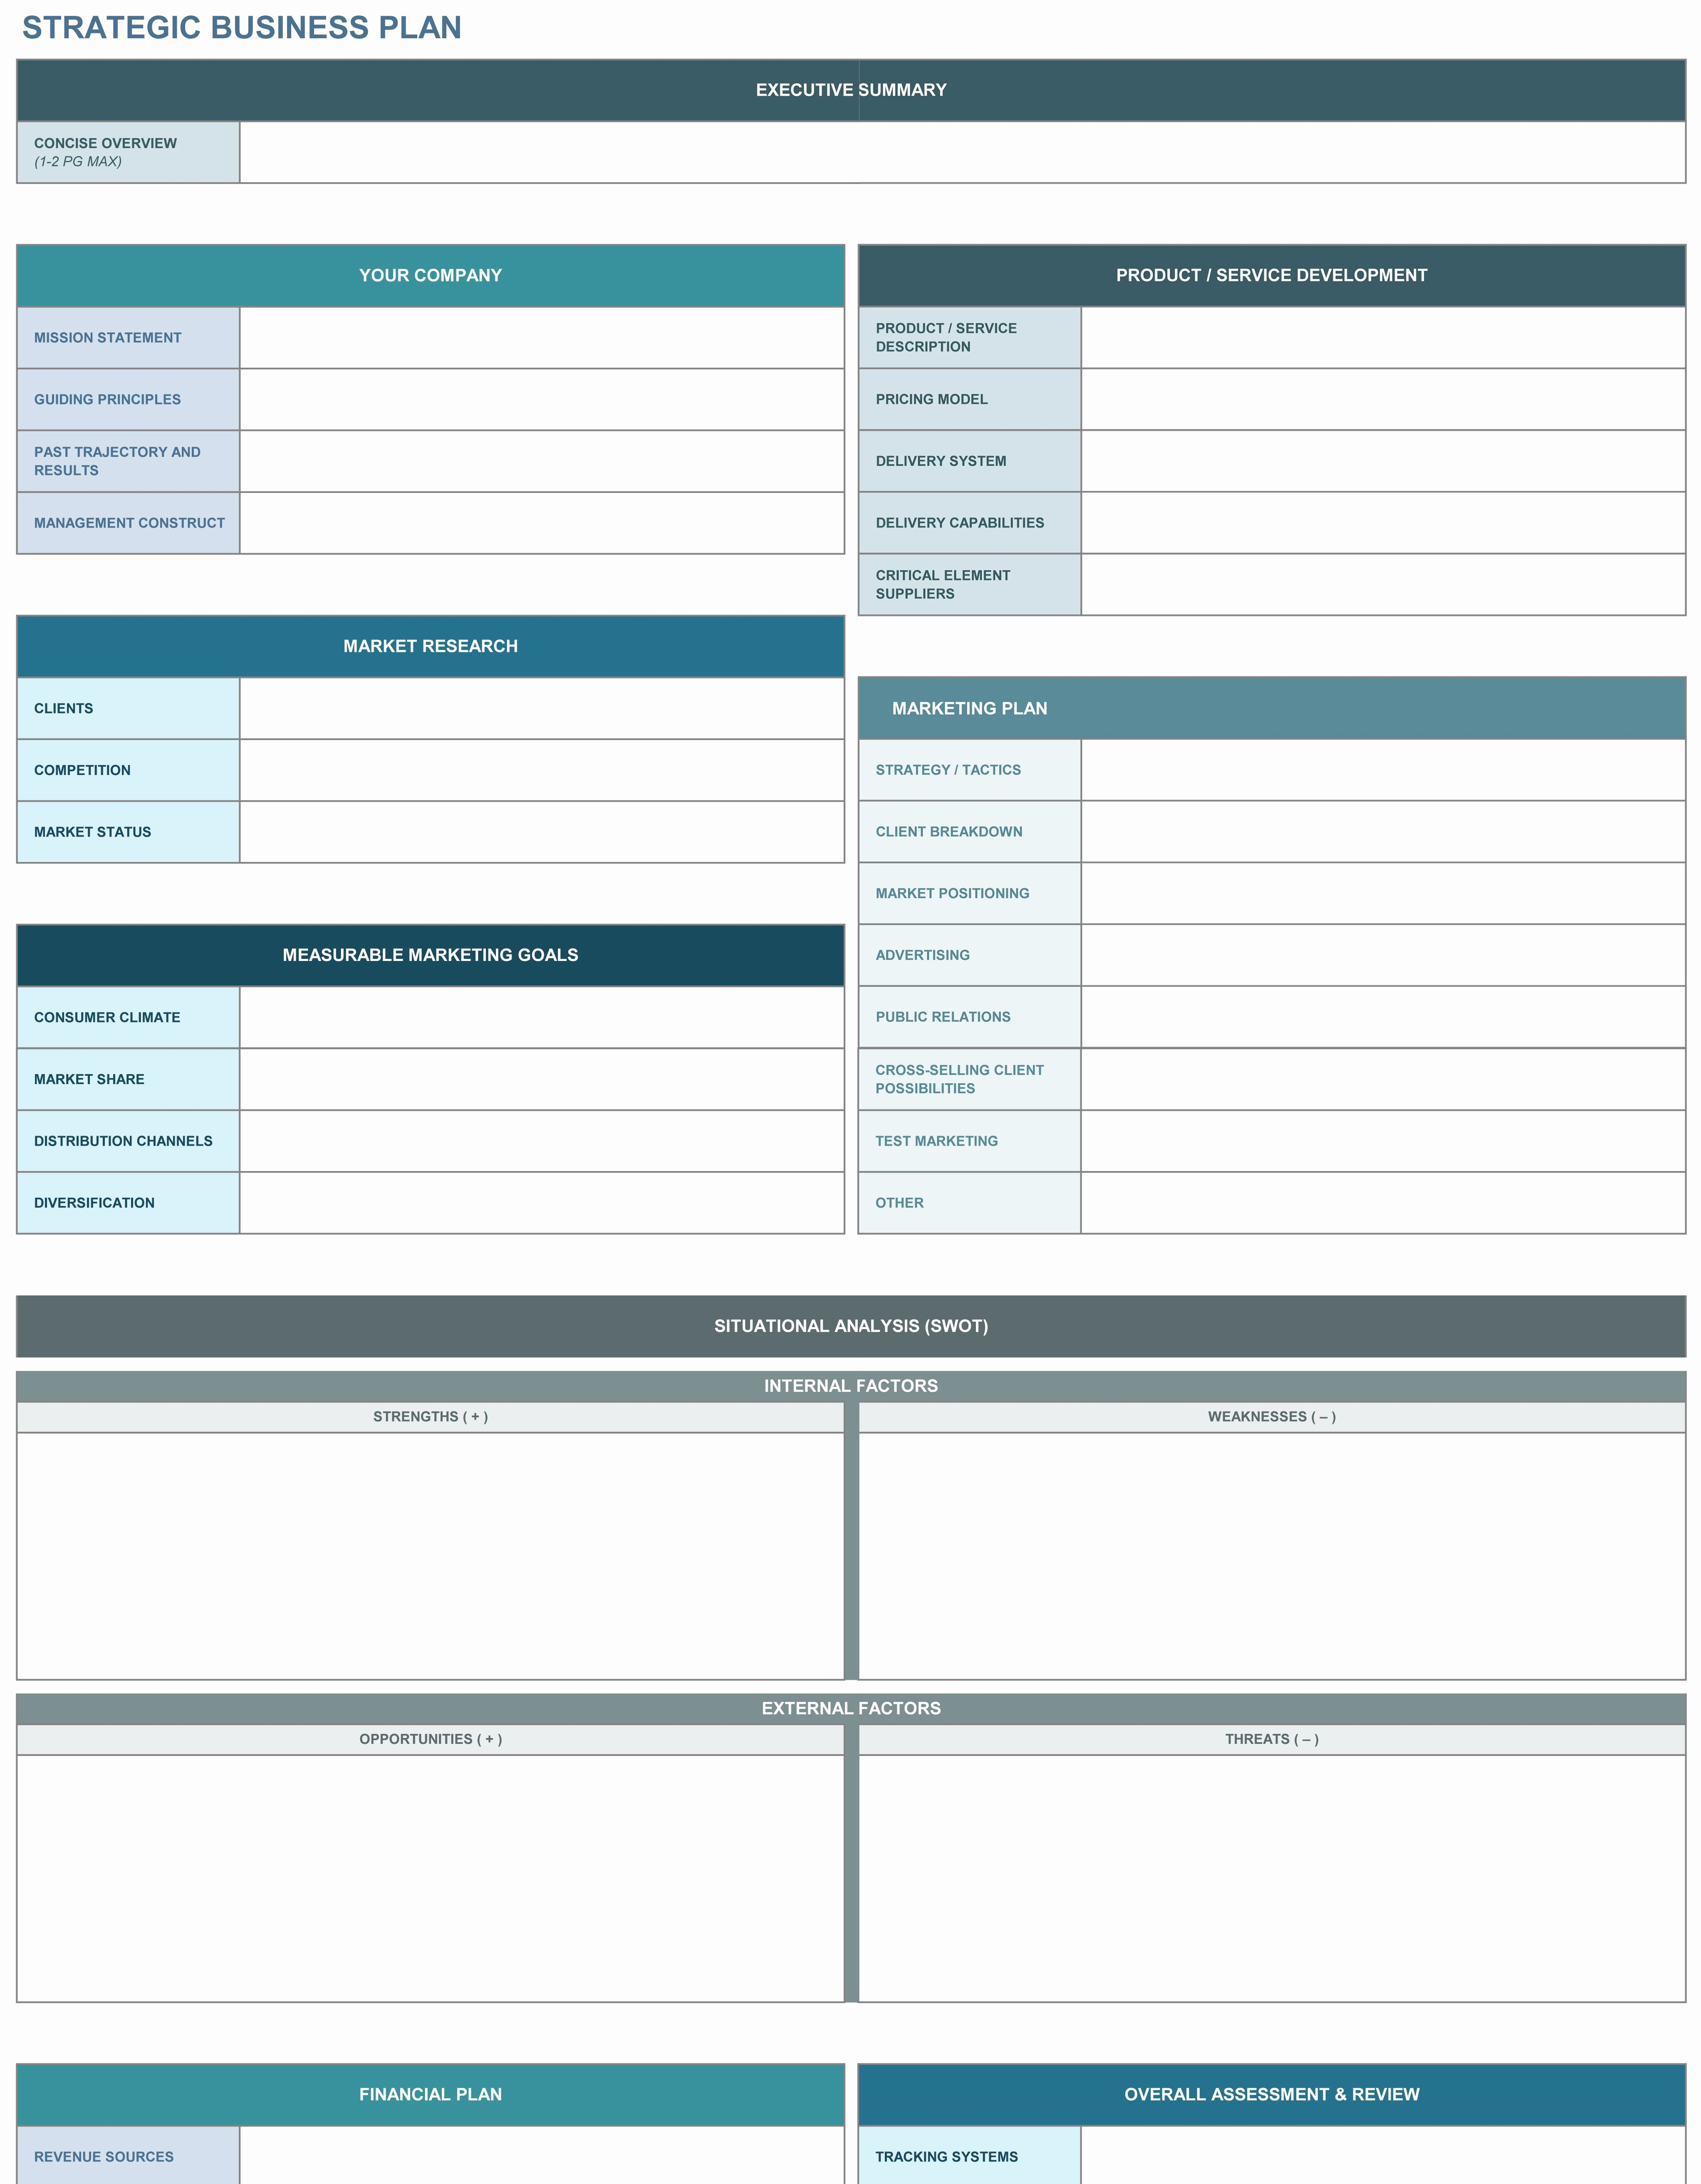 Strategic Business Plan Template Luxury 9 Free Strategic Planning Templates Smartsheet